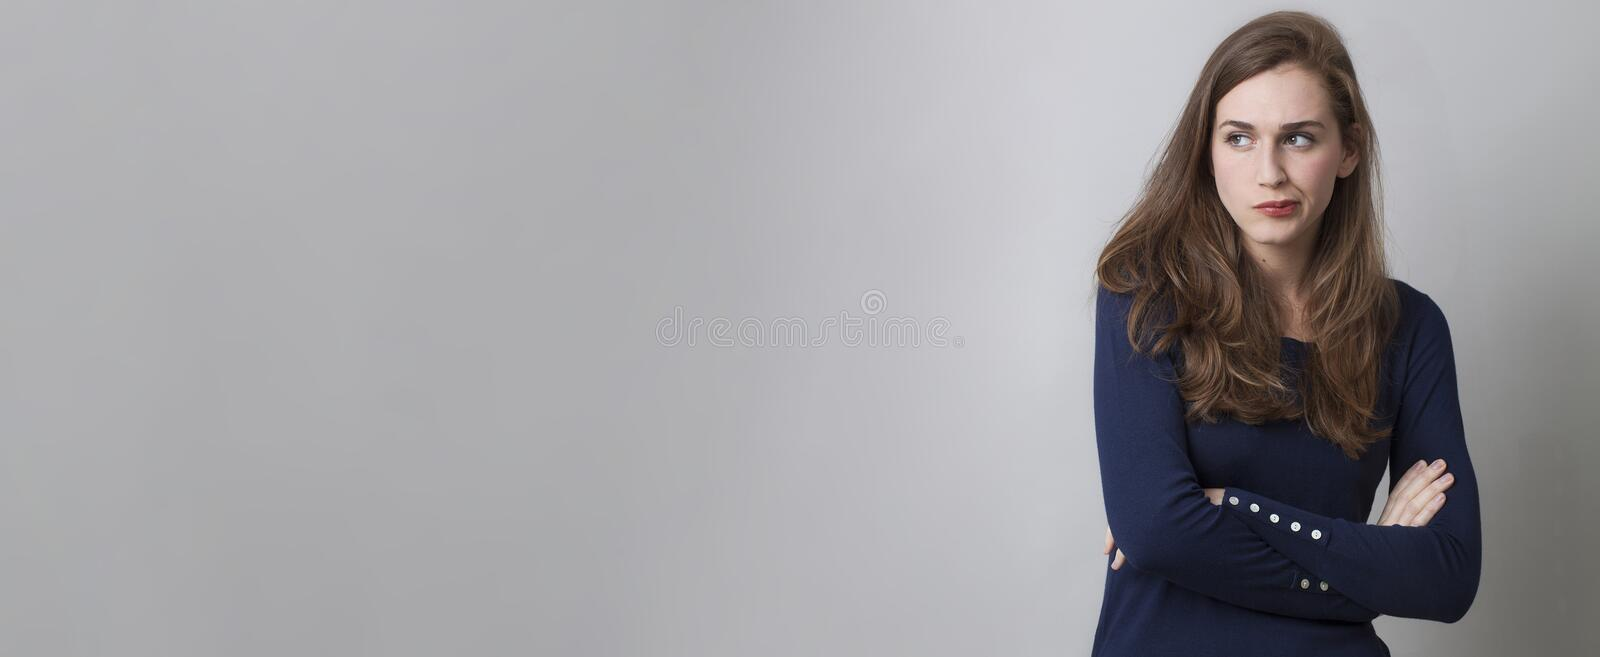 Doubt and worry concept with pouting young woman, long banner royalty free stock photos